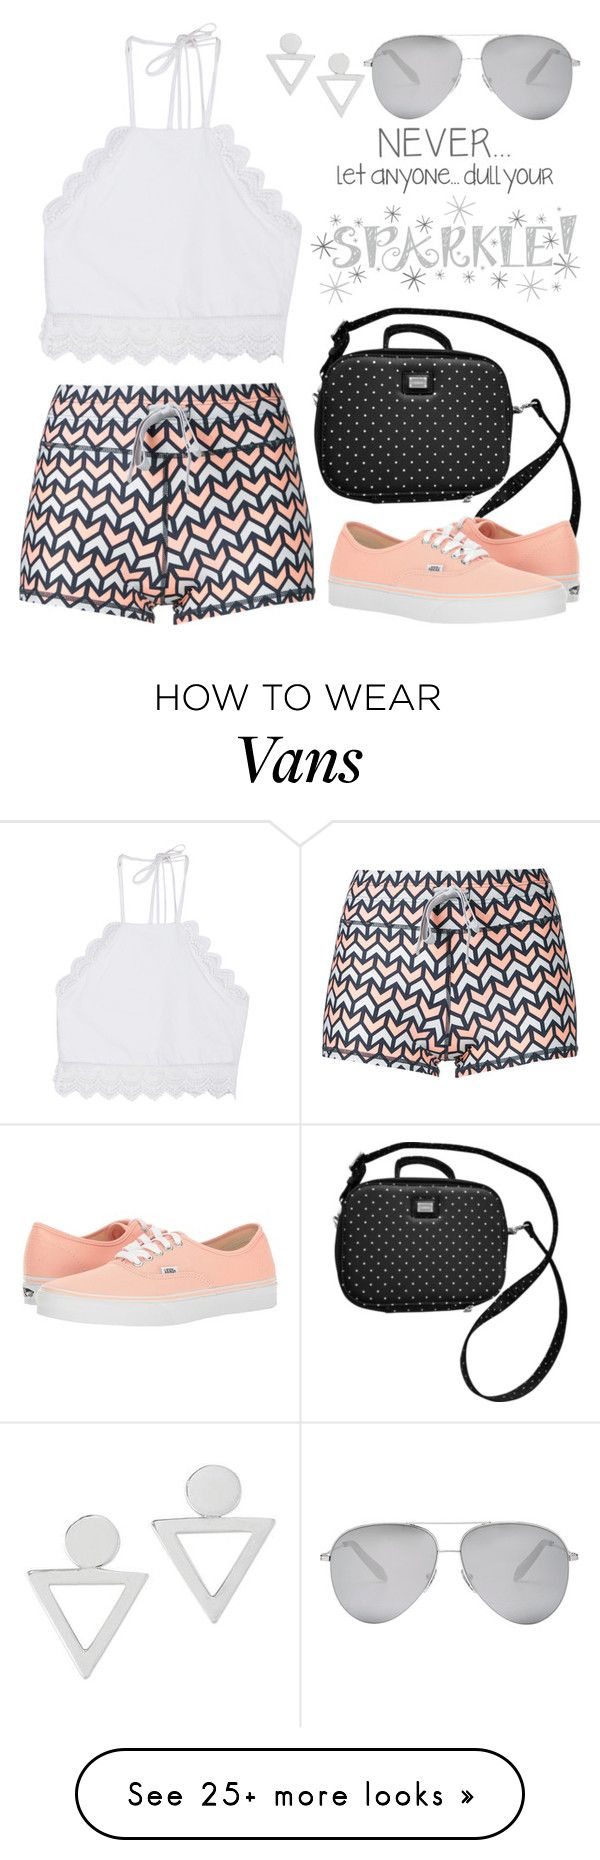 """Shape 4052"" by boxthoughts on Polyvore featuring The Upside, Front Row Shop, Dolce&Gabbana, Vans, Victoria Beckham, NOVICA and Wall Pops!"